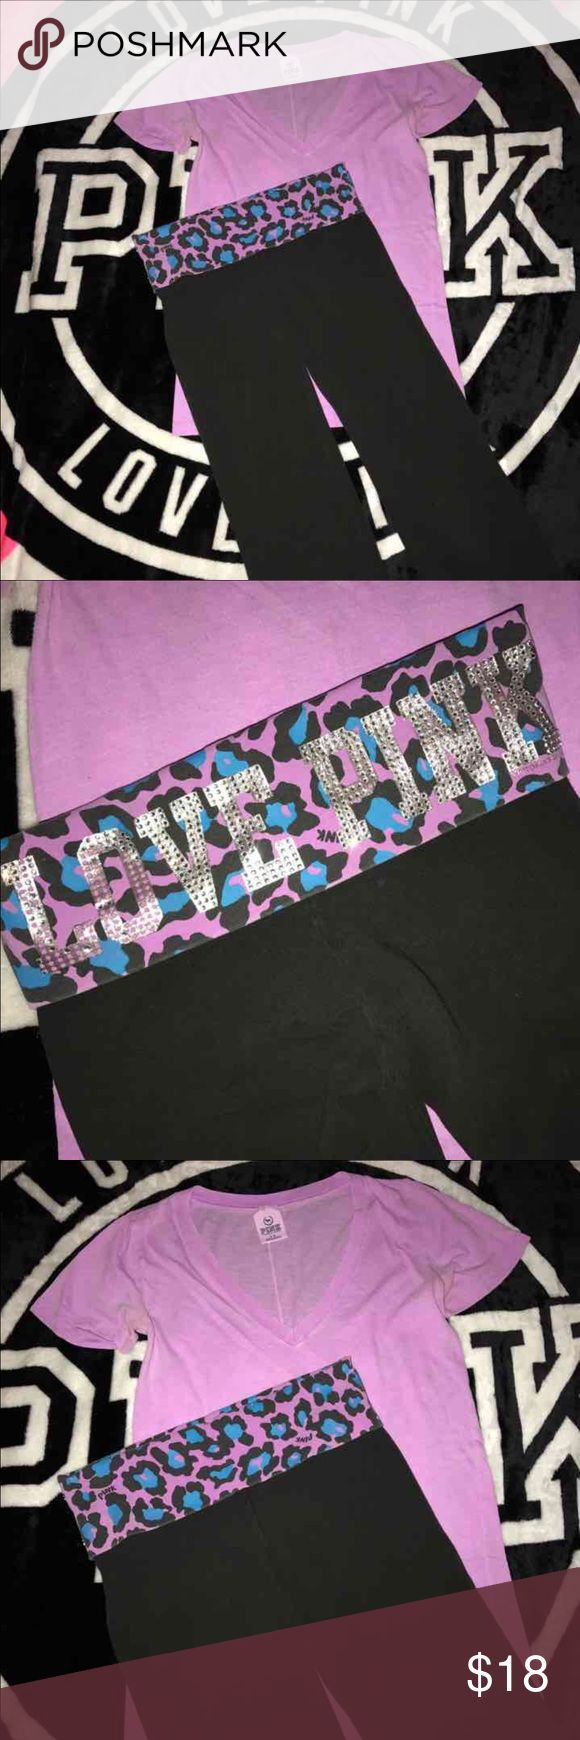 PINK VS Shirt/Purple Cheetah Print Pants Bundle Shirt is size Small, no rips, no stains, just color fade....Yoga pants are size XSmall, Cropped, Waistband is accented with Cheetah Print and rhinestones on back (some are missing, see photos please), no rips, no stains PINK Victoria's Secret Tops Tees - Short Sleeve